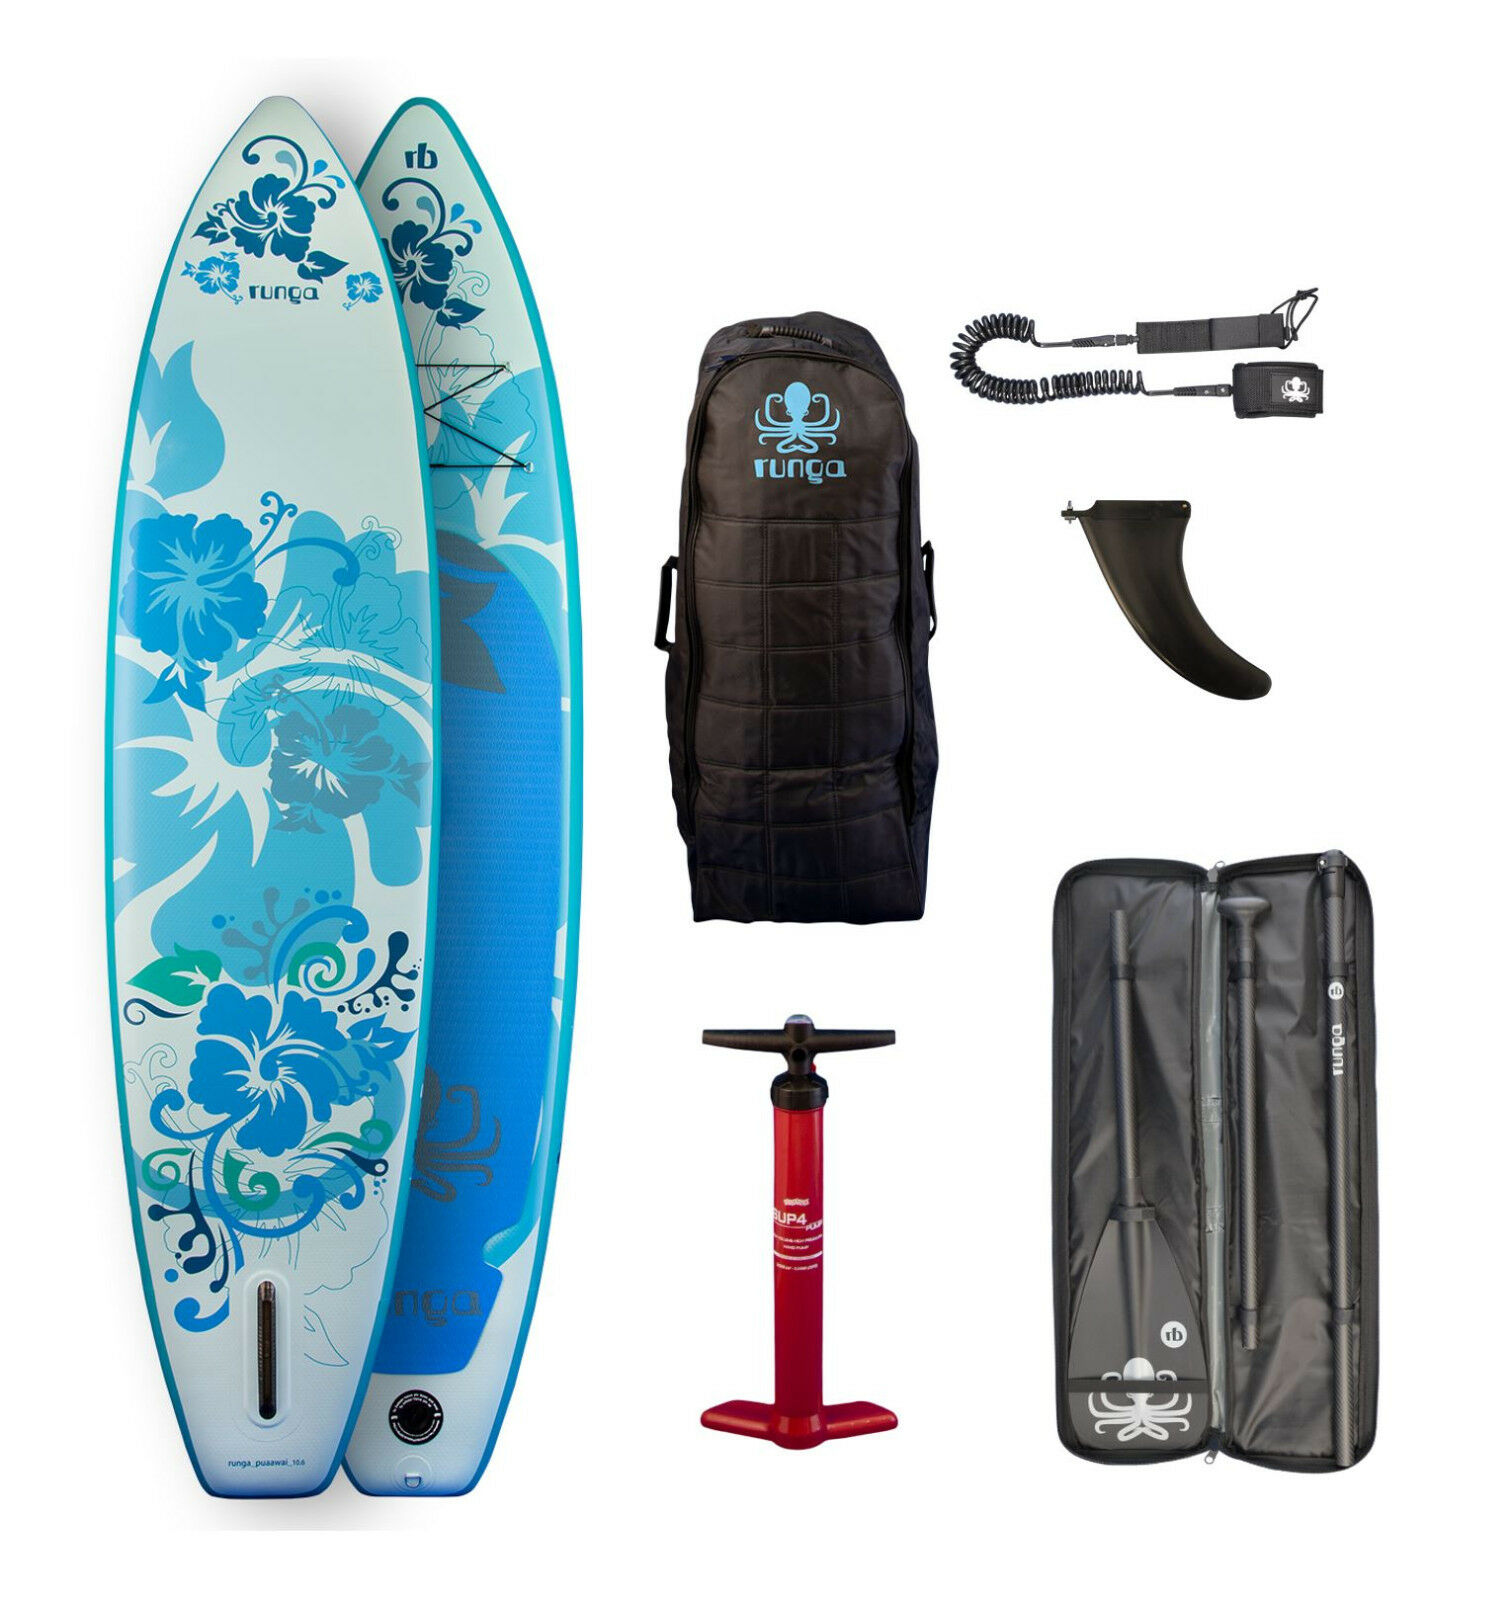 RUNGA PUAAWAI INFLATABLE STAND-UP STAND-UP STAND-UP PADDLE BOARD 10.6 ISUP PADDLING SUP  RB2 a92156